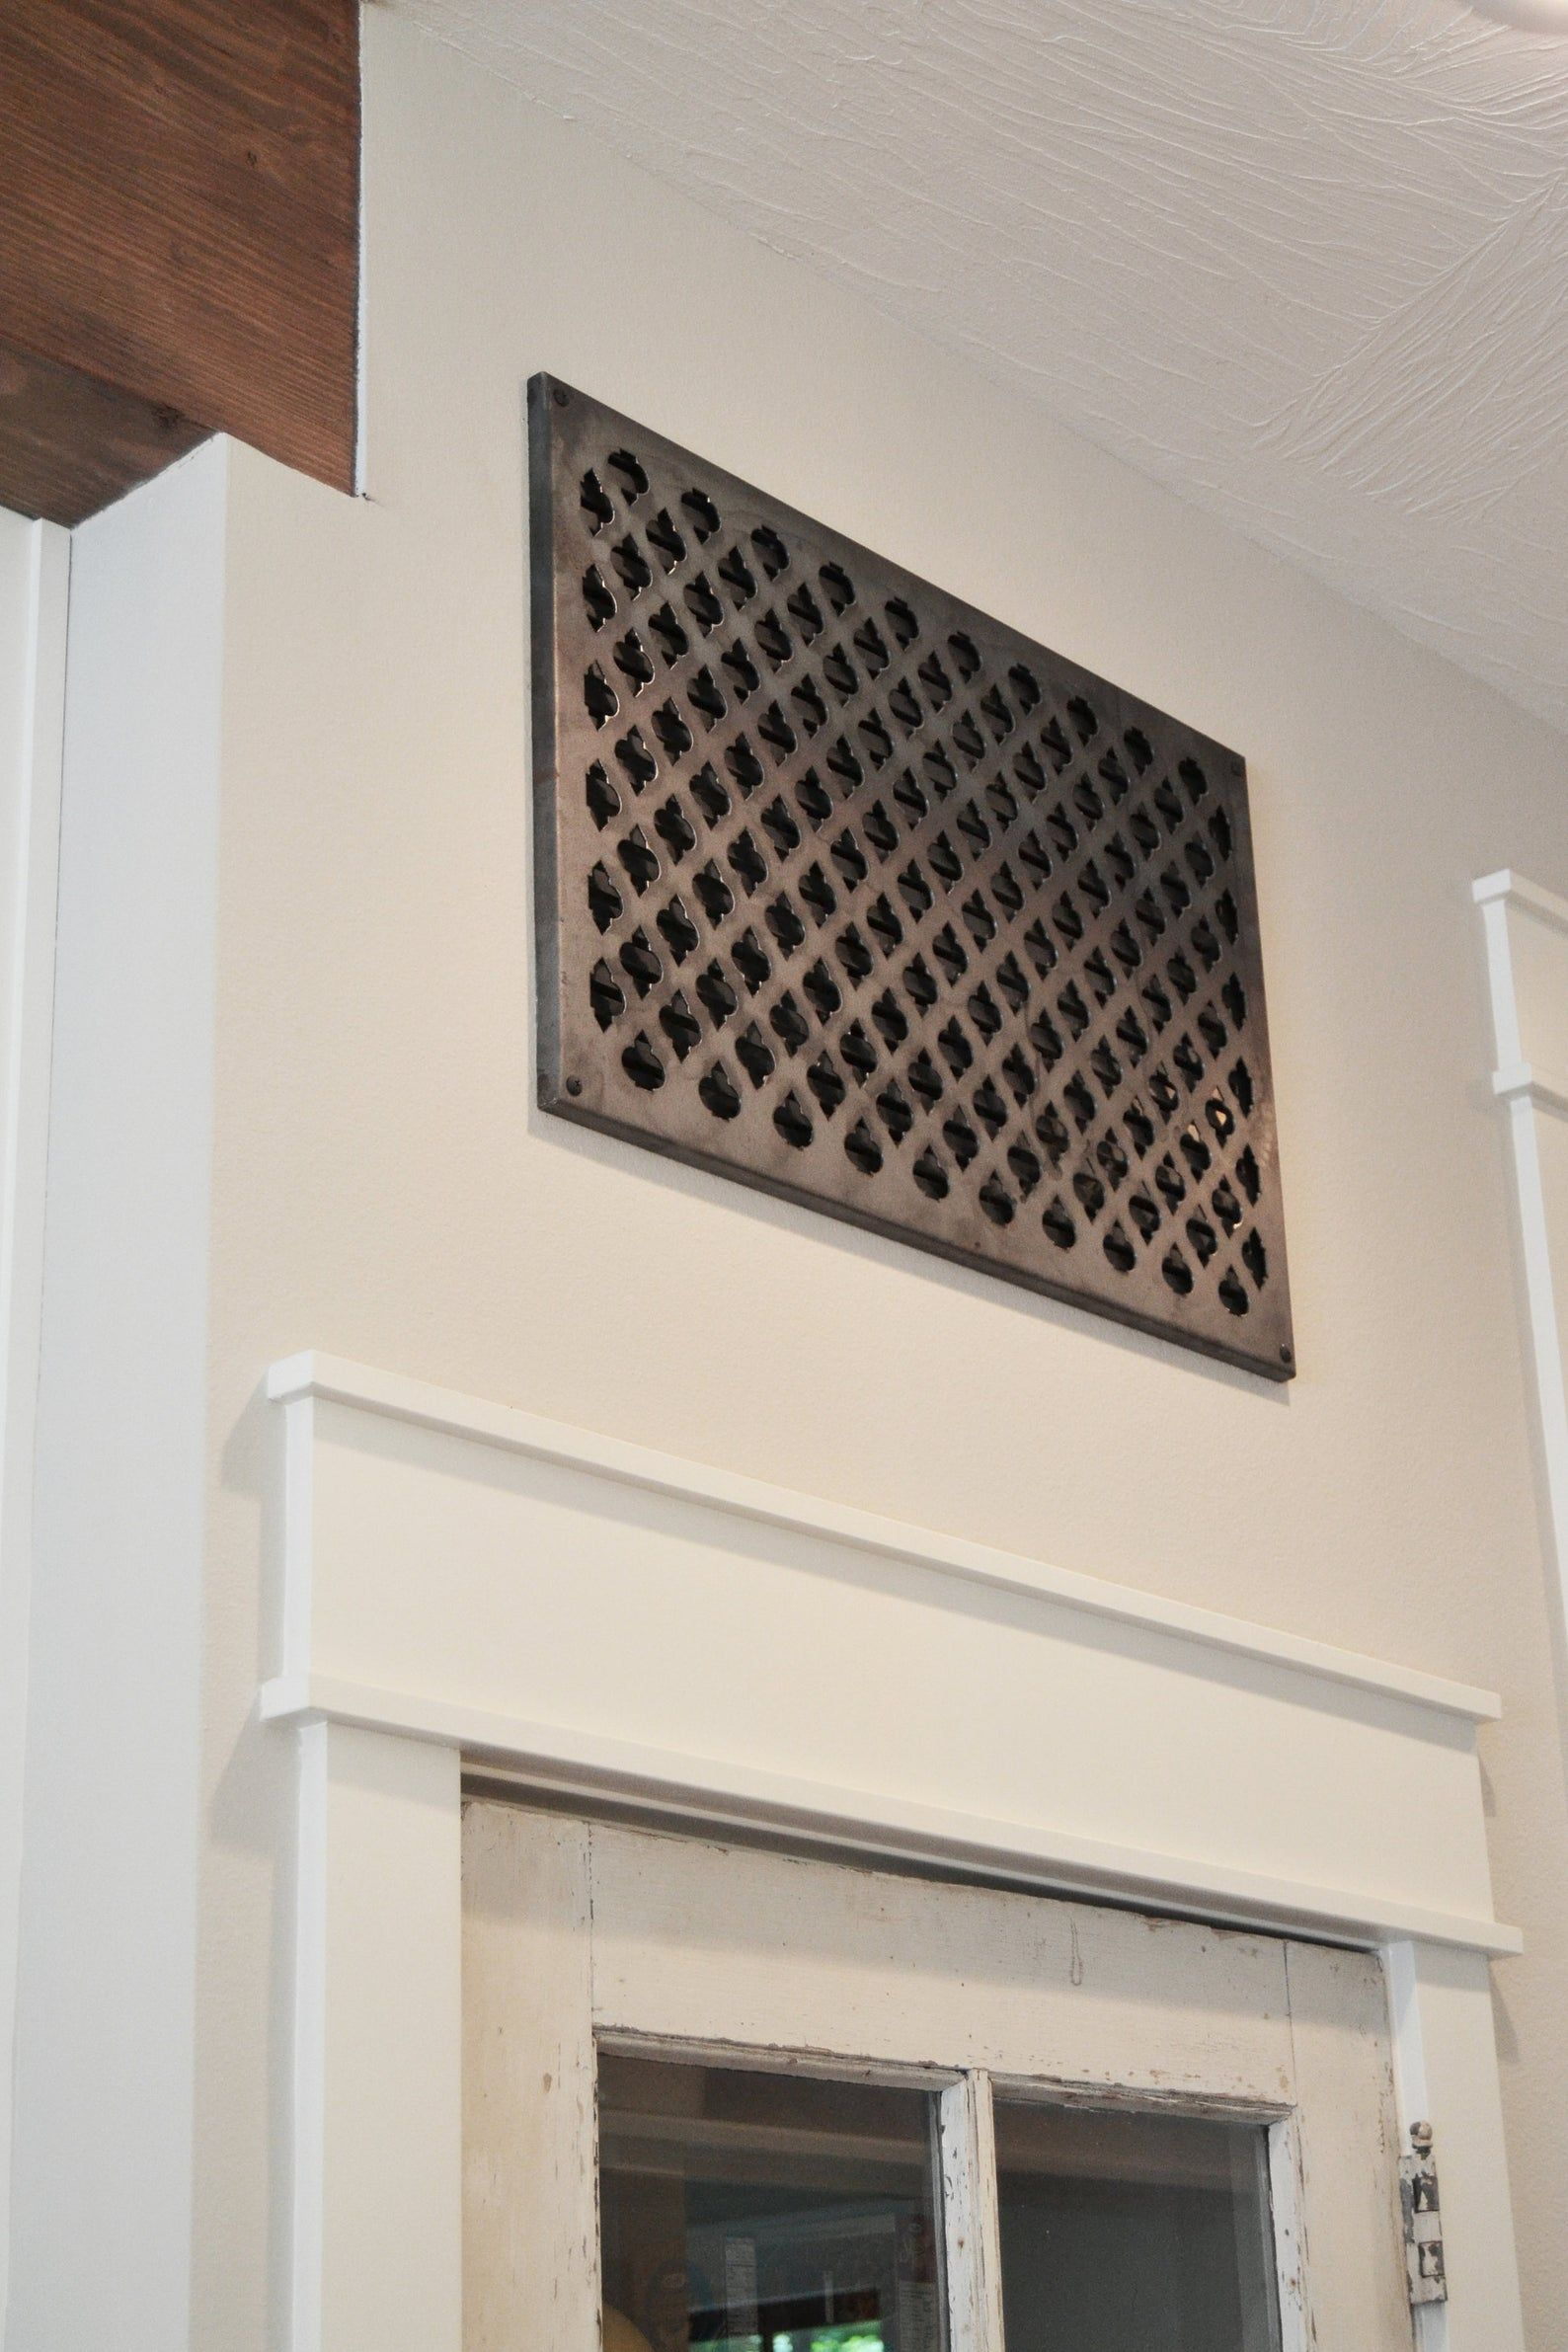 Return Air Vent Covers Farmhouse Decor Air Vent